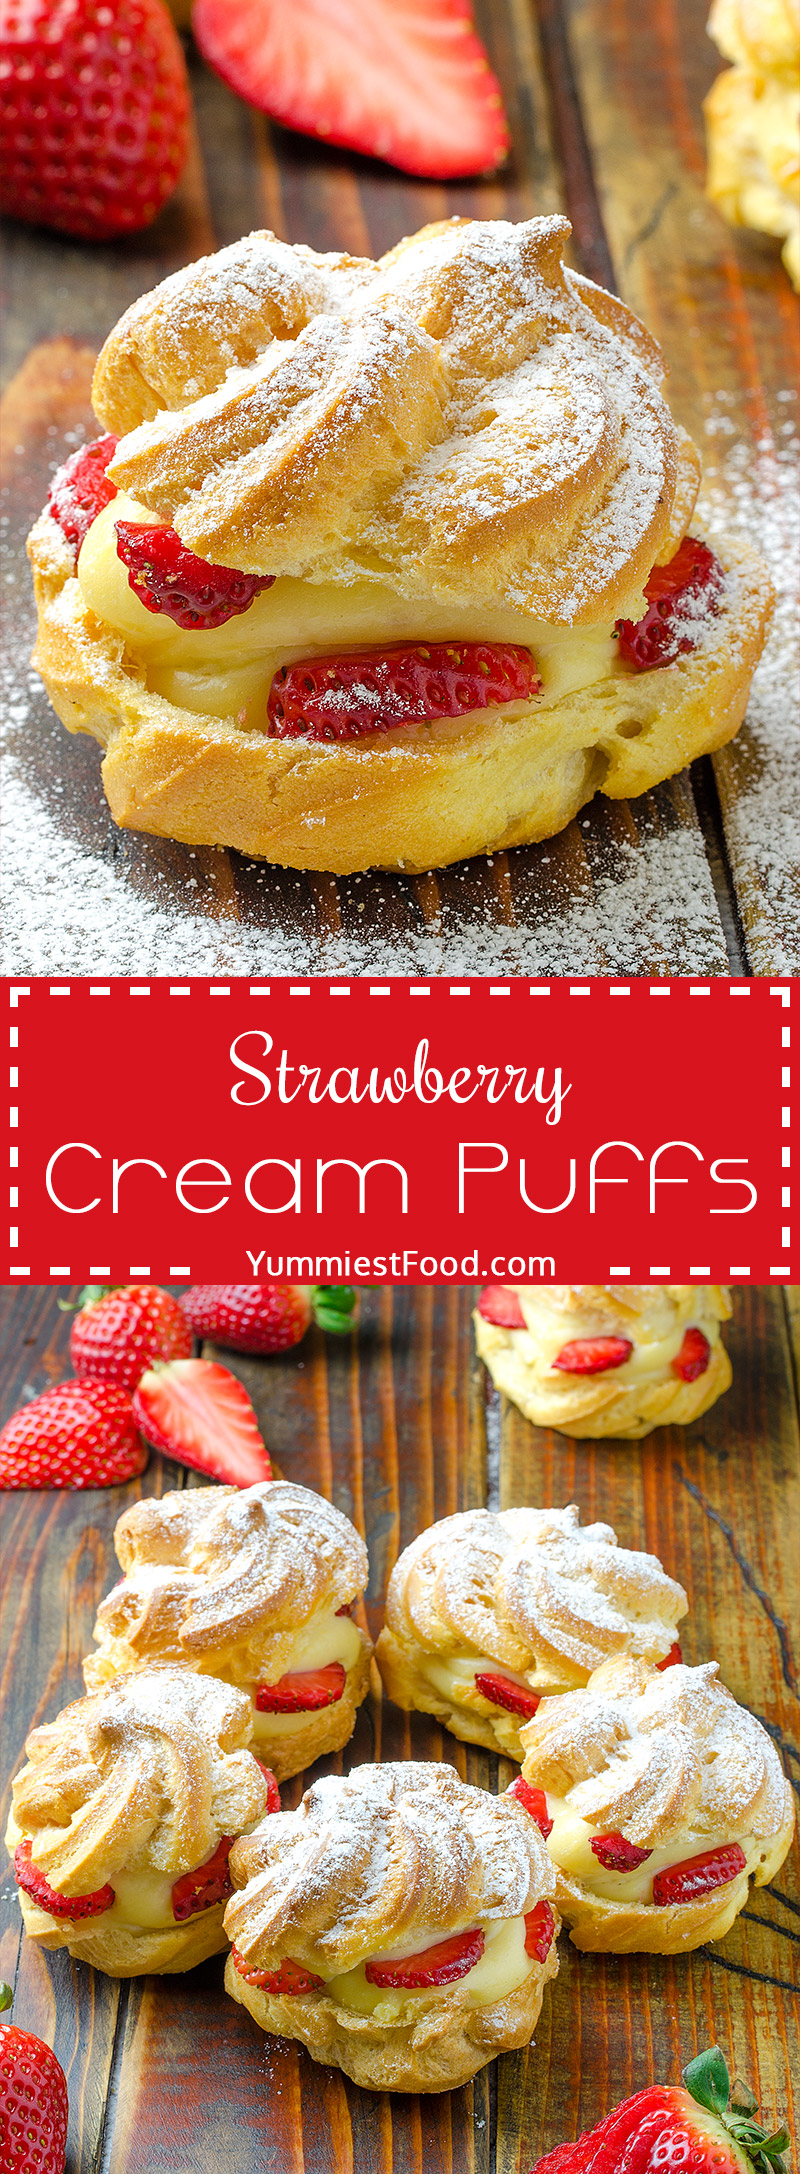 These Strawberry Cream Puffs are so light, fresh, moist and delicious.